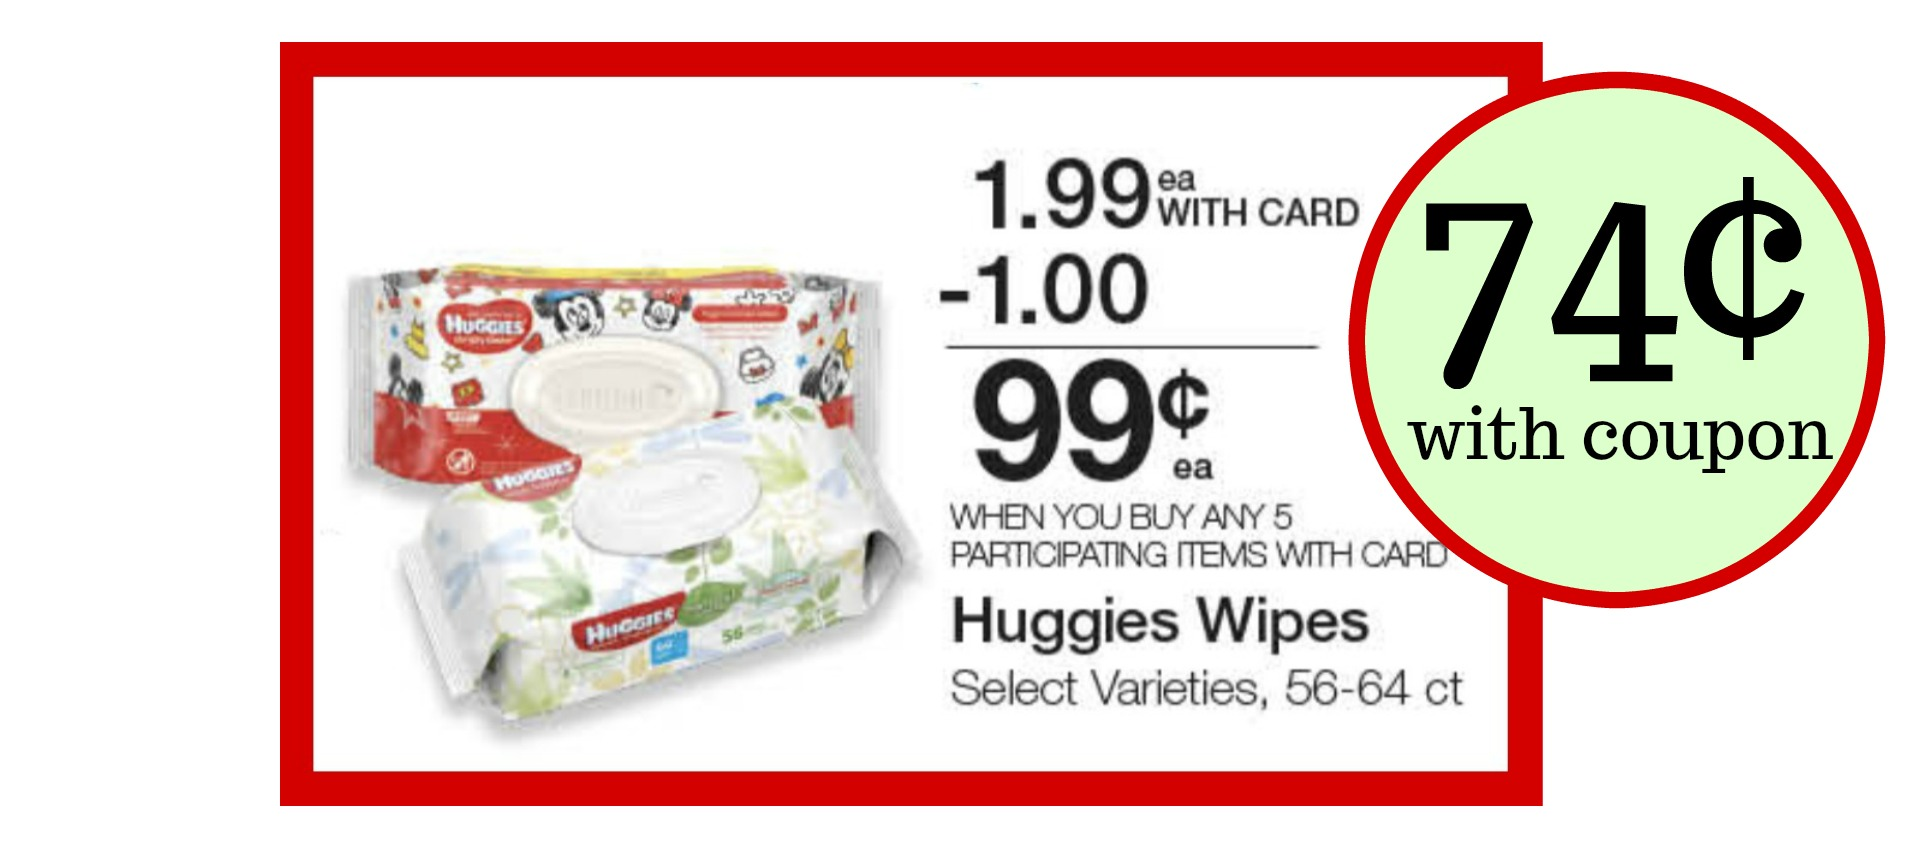 photograph about Huggies Wipes Printable Coupons named huggies wipes I Centre Kroger